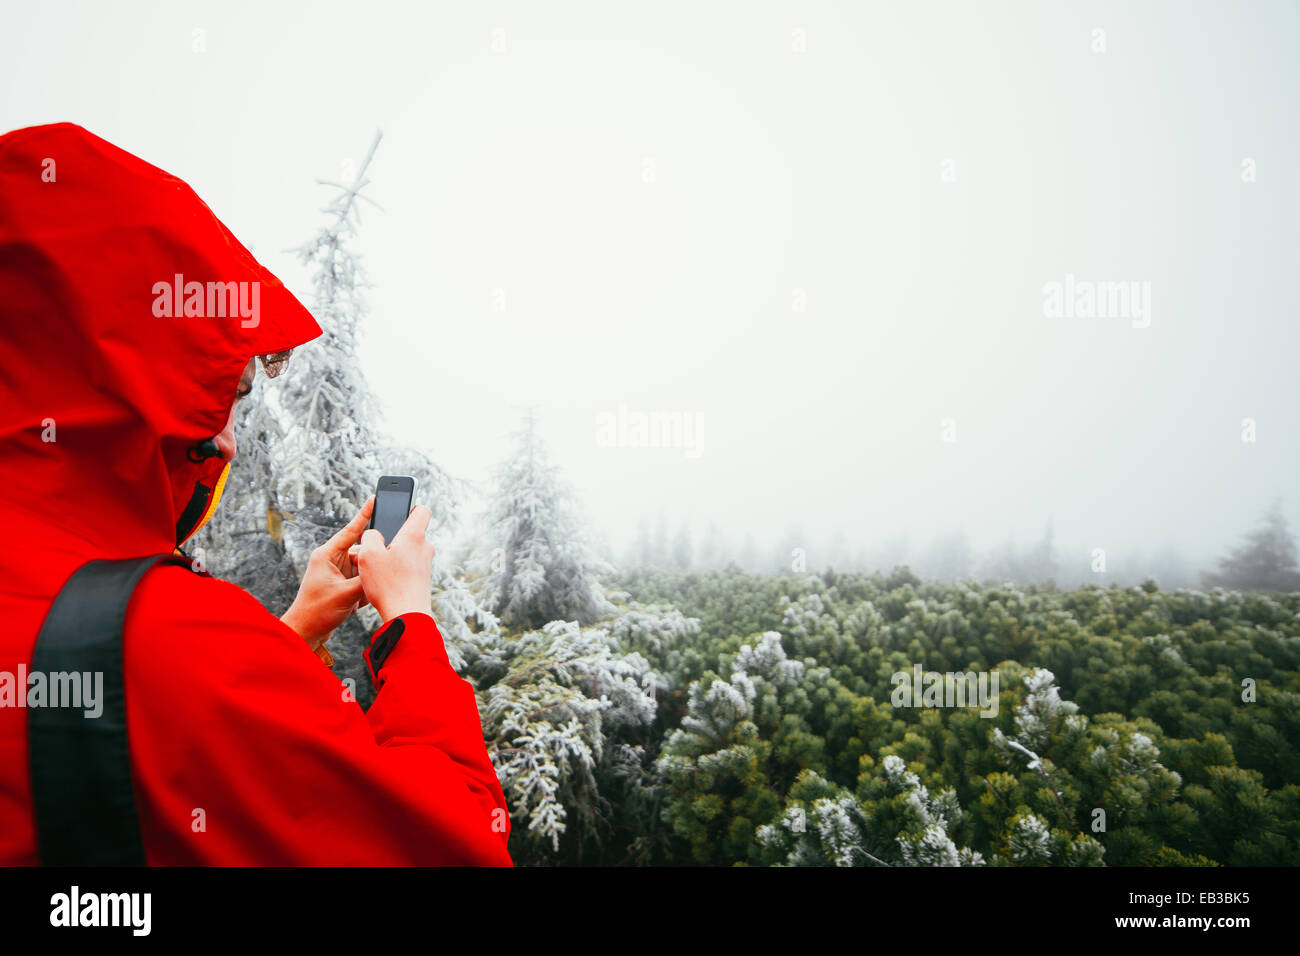 Man photographing forest - Stock Image